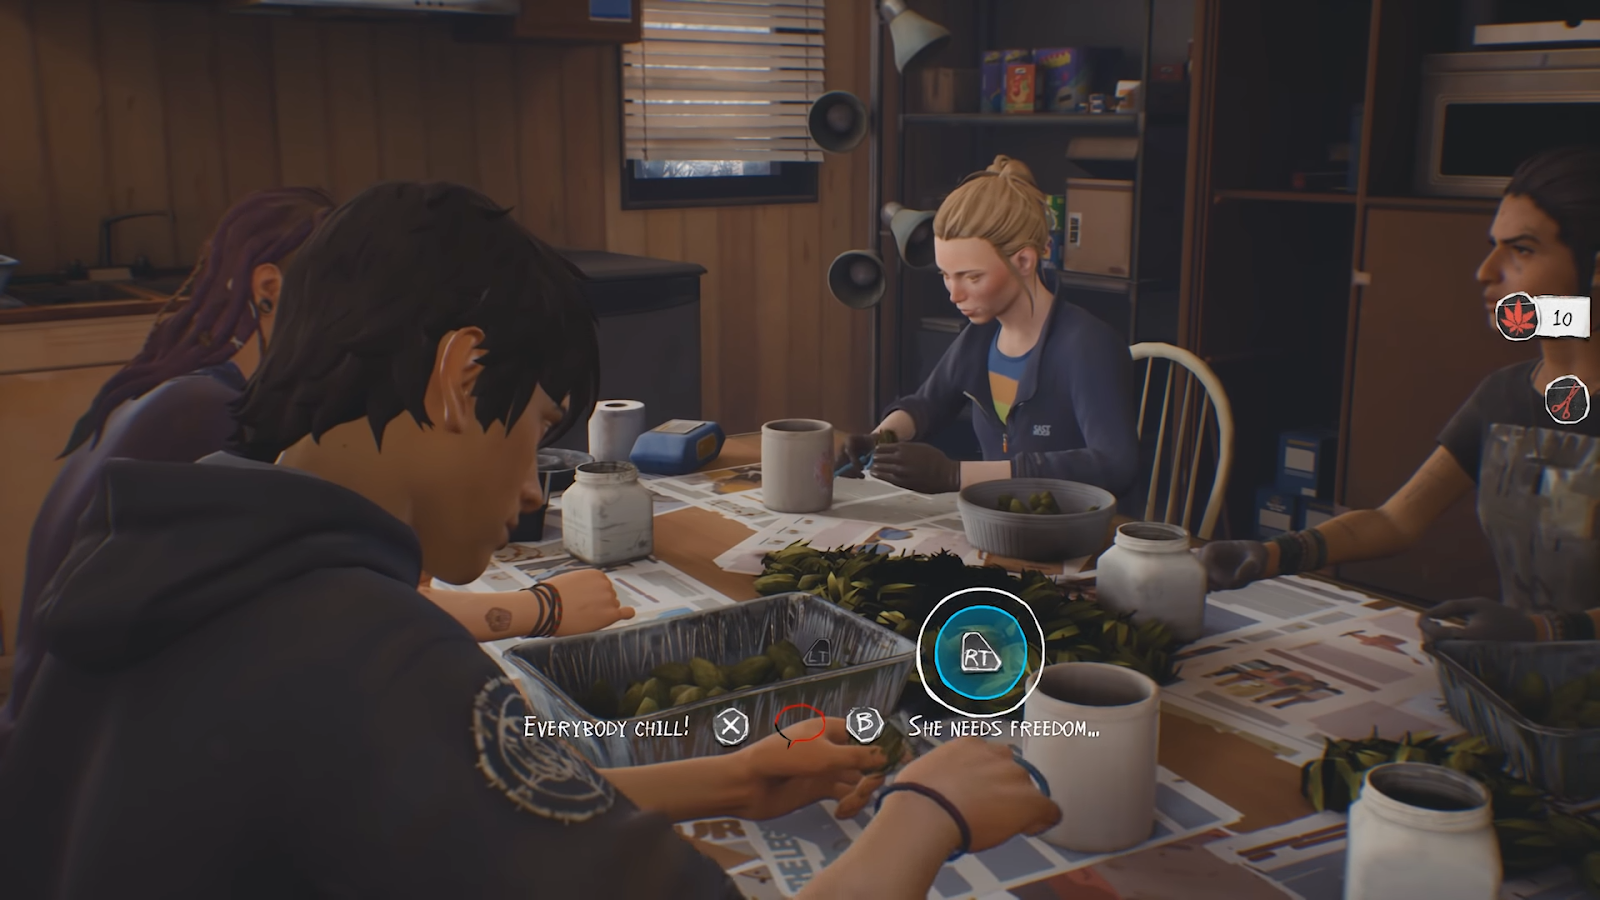 Four people are sitting around a table, cutting up plants. There are onscreen prompts with circles closing around the right trigger symbol for the gamepad, with the left trigger symbol greyed out. Underneath are two dialogue options, and a red and black speech bubble that indicates that one quarter of the time to choose a dialogue option is already up. To the right of the screen is a count of how many leaves have been cut, and the status of the scissors you are using.